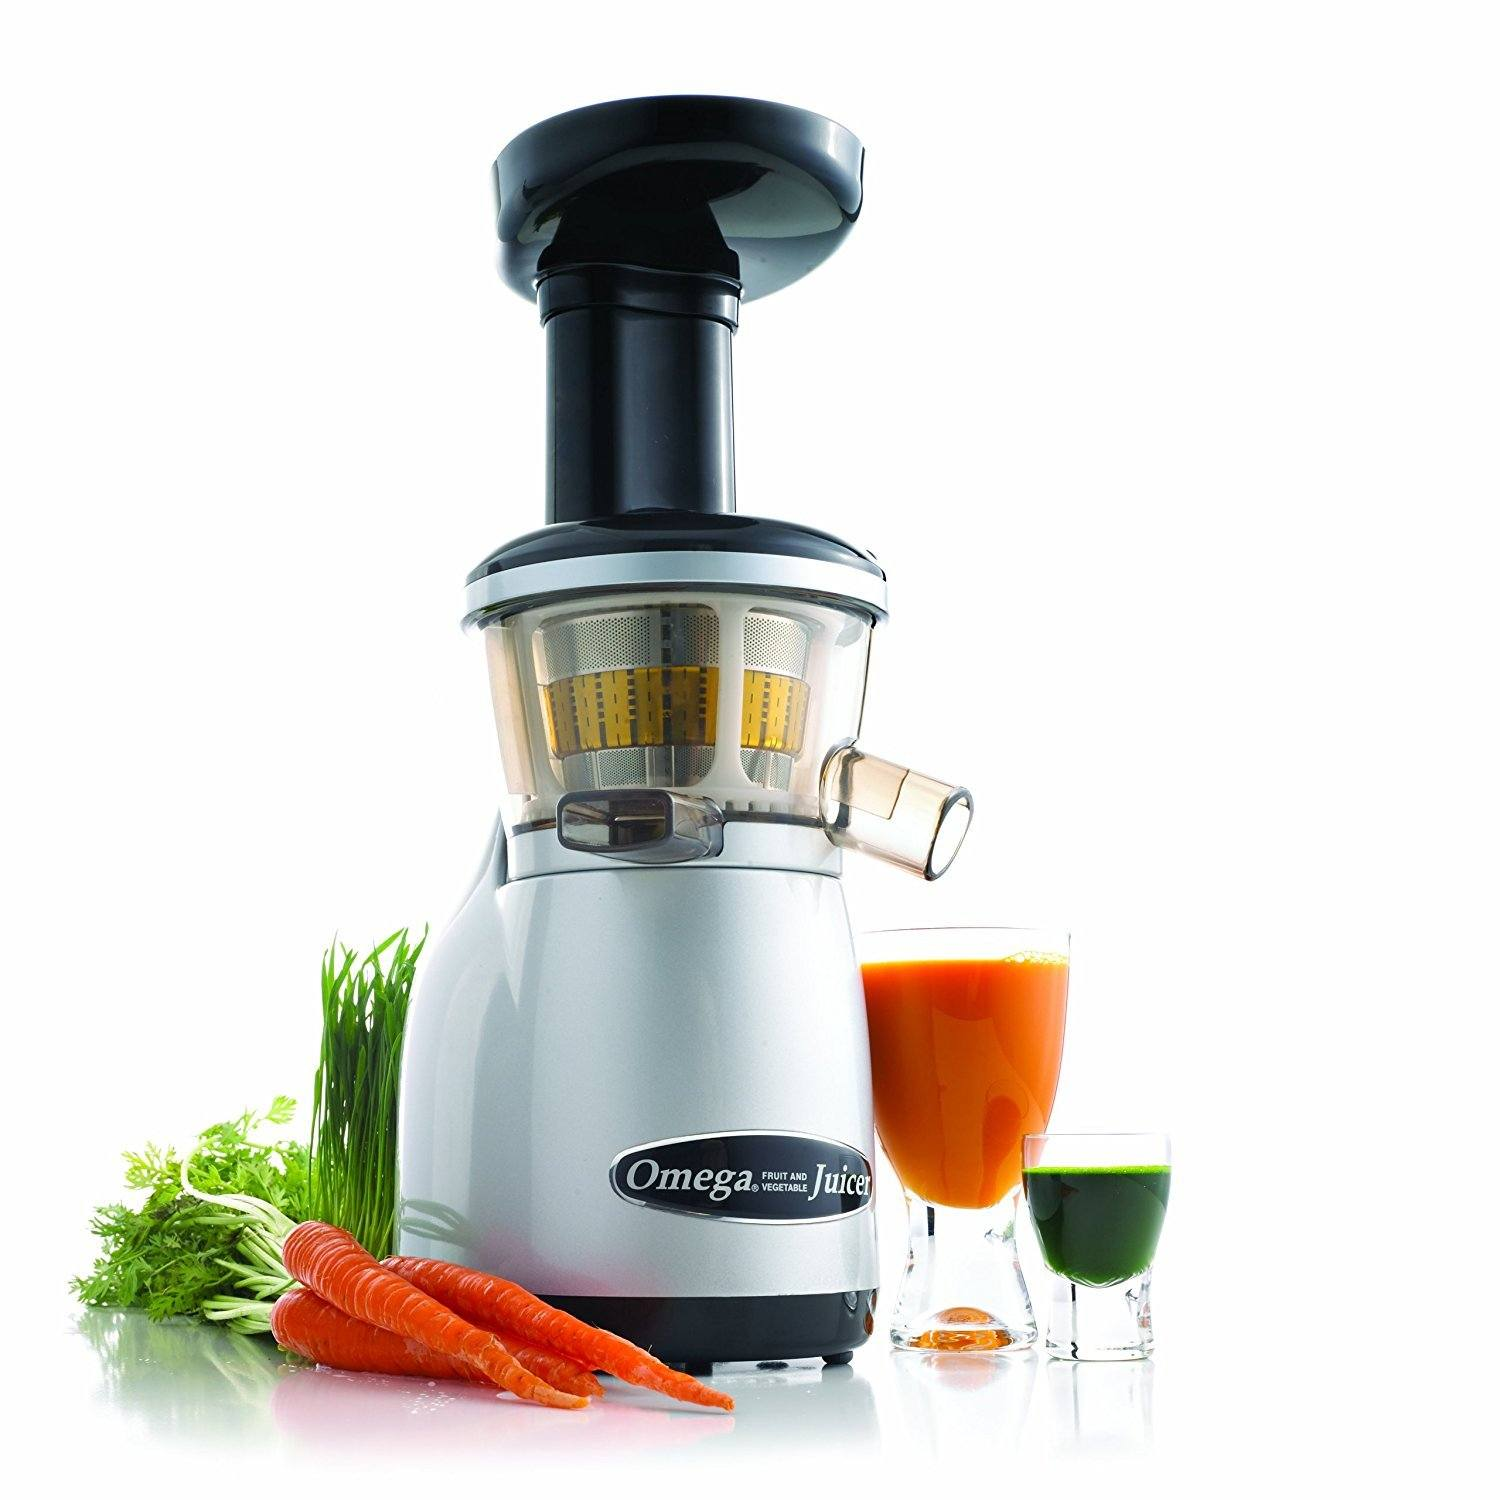 Omega VRT350 Heavy Duty Slow Speed Juicer